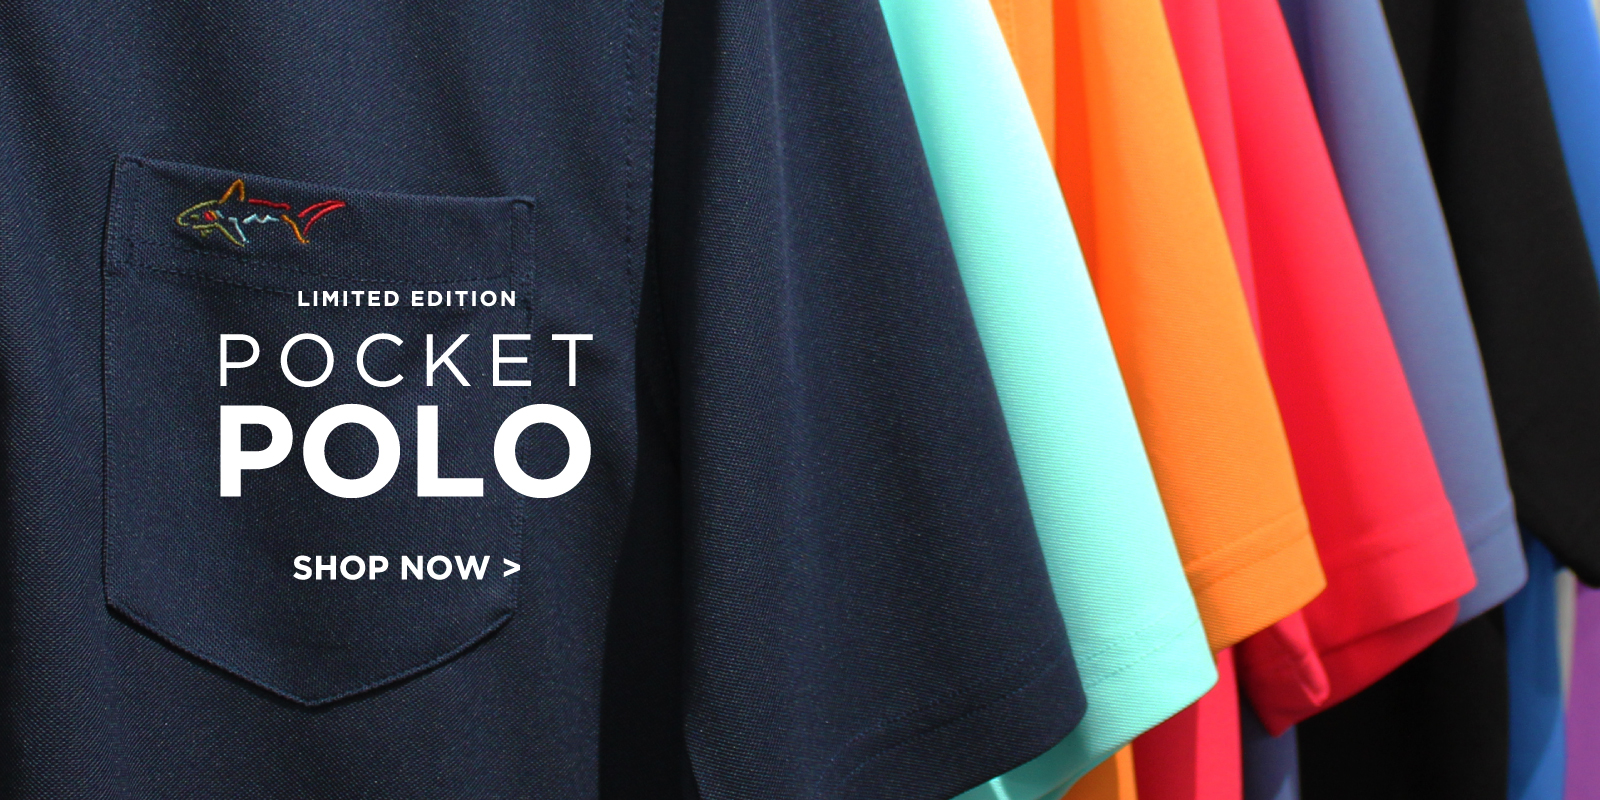 Limited Edition Pocket Polo Shop Now